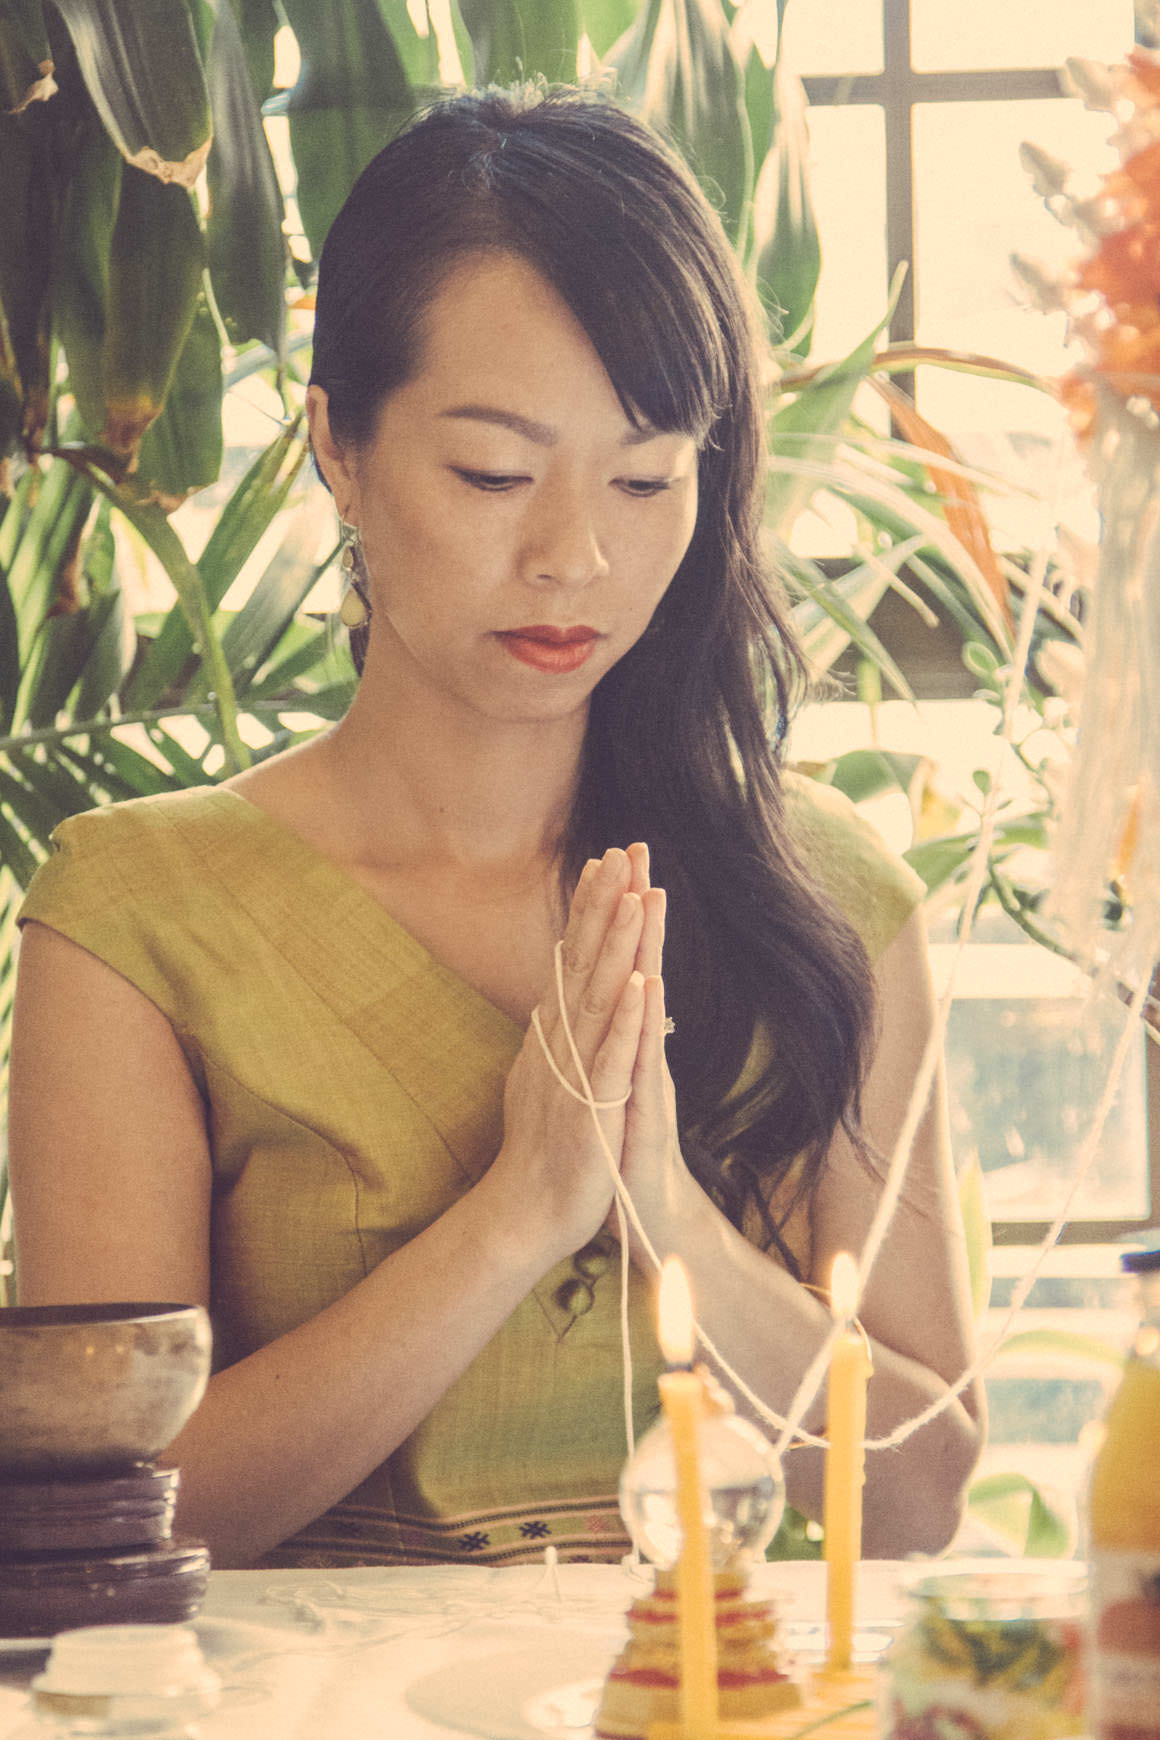 lao girl praying